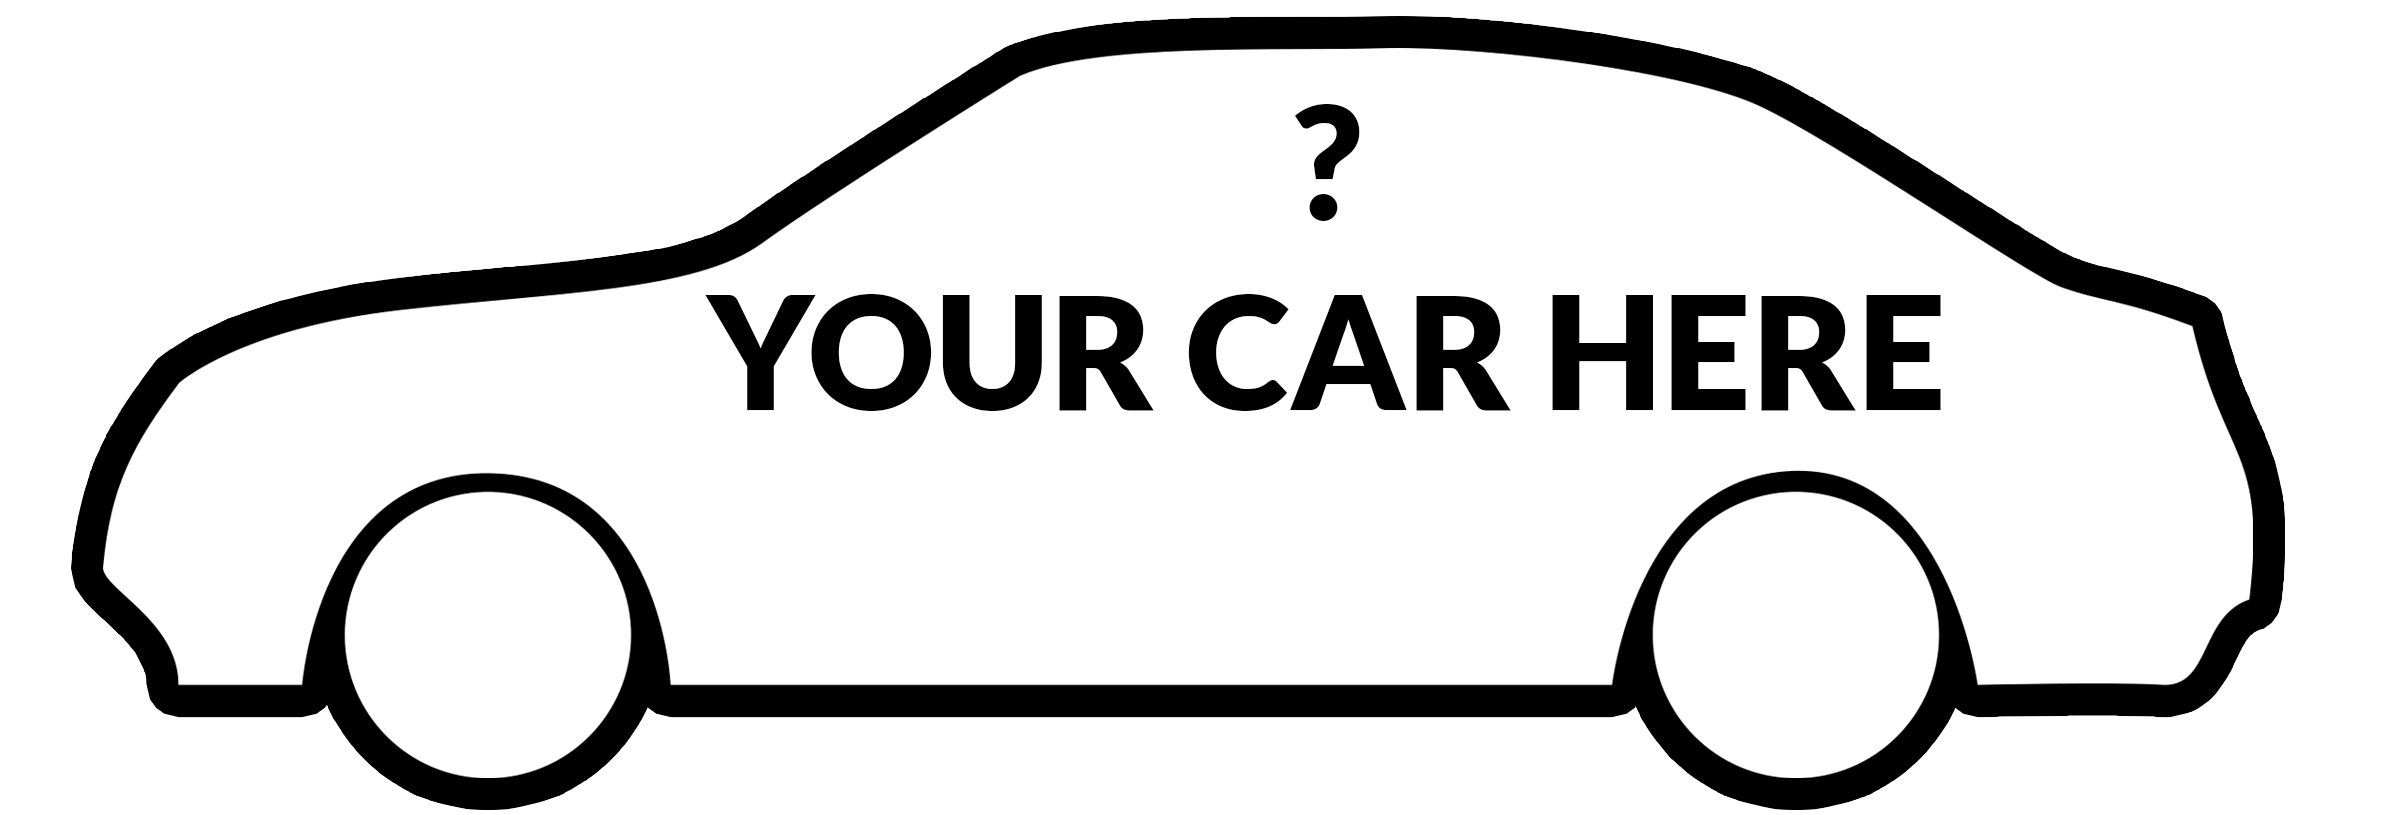 Car side png clipart.